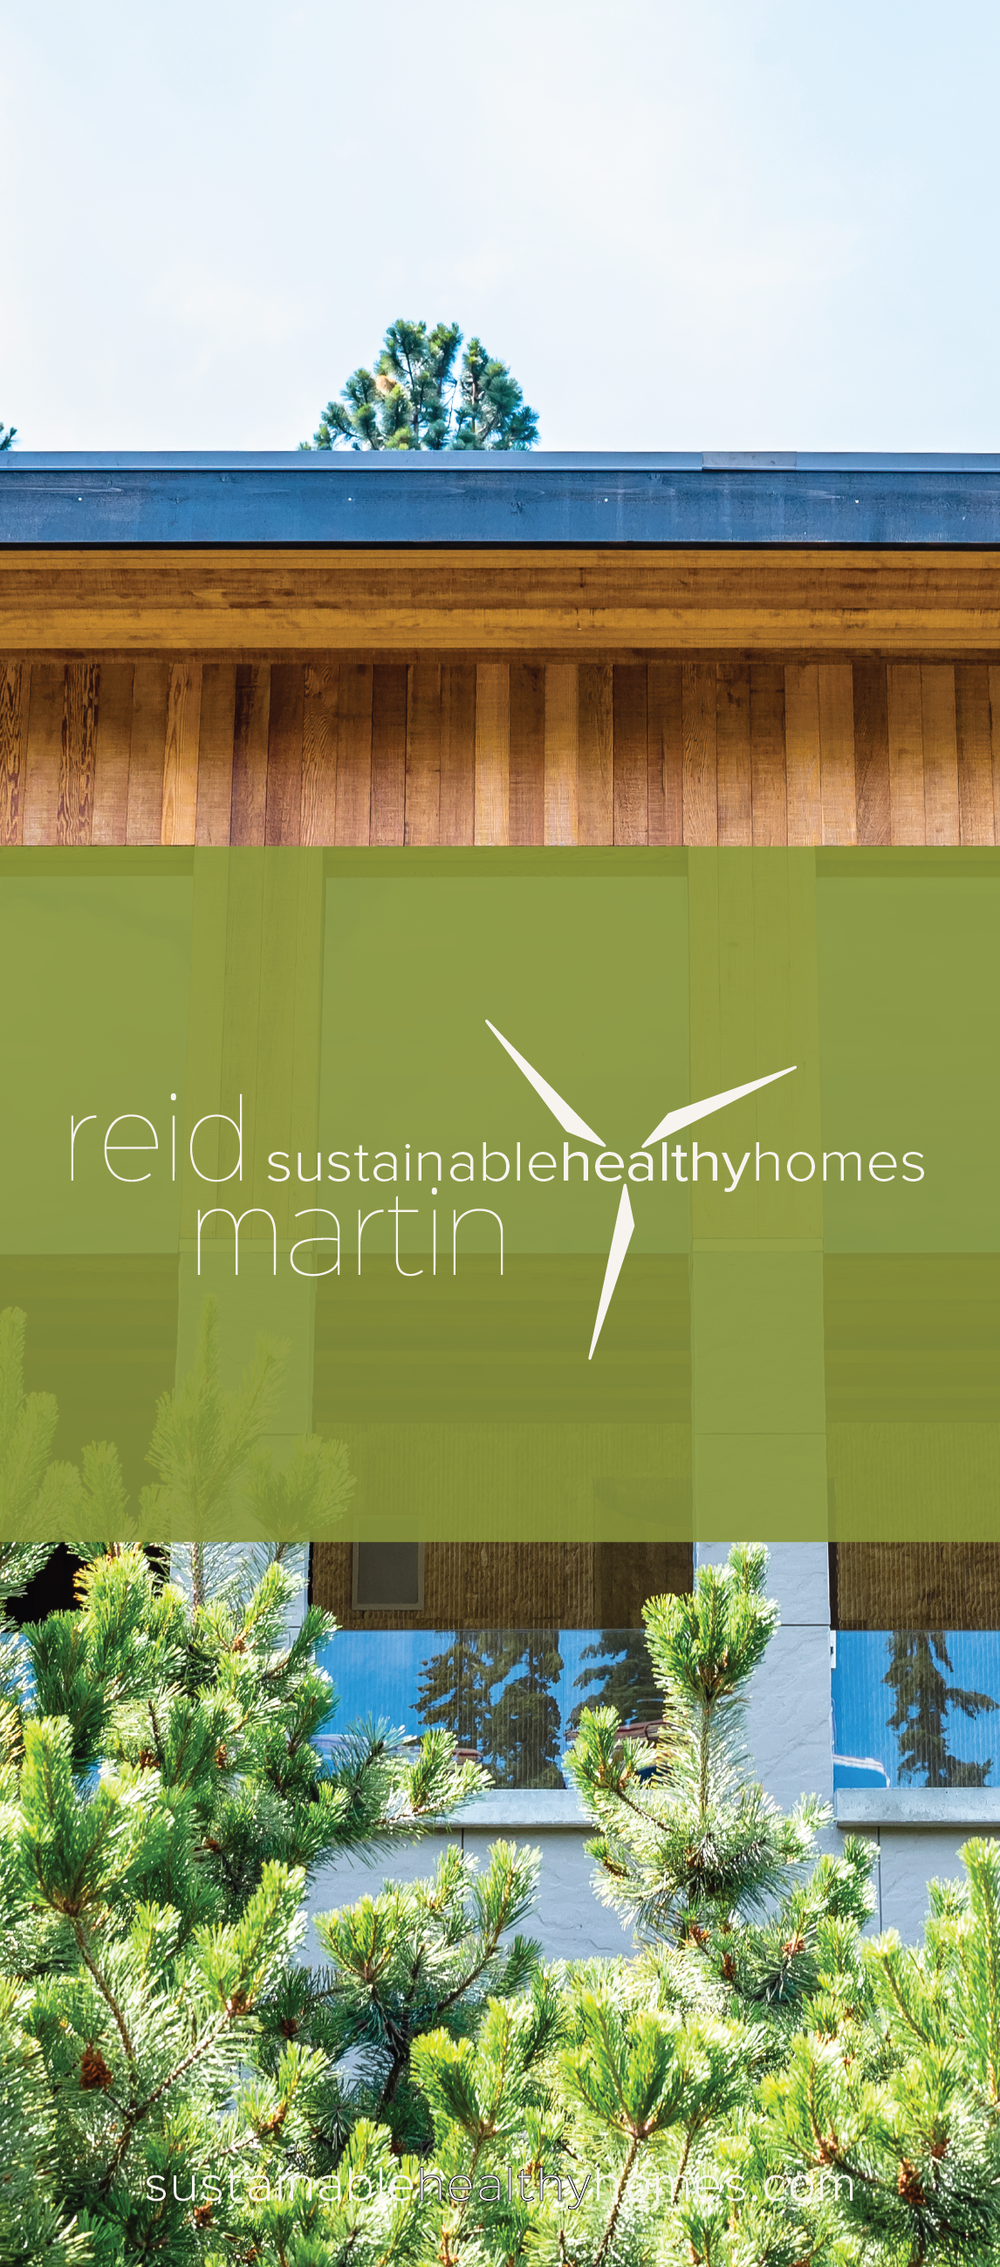 Reid Martin, Sustainable Healthy Homes Rack Card - Cread by: Brightly & Co.